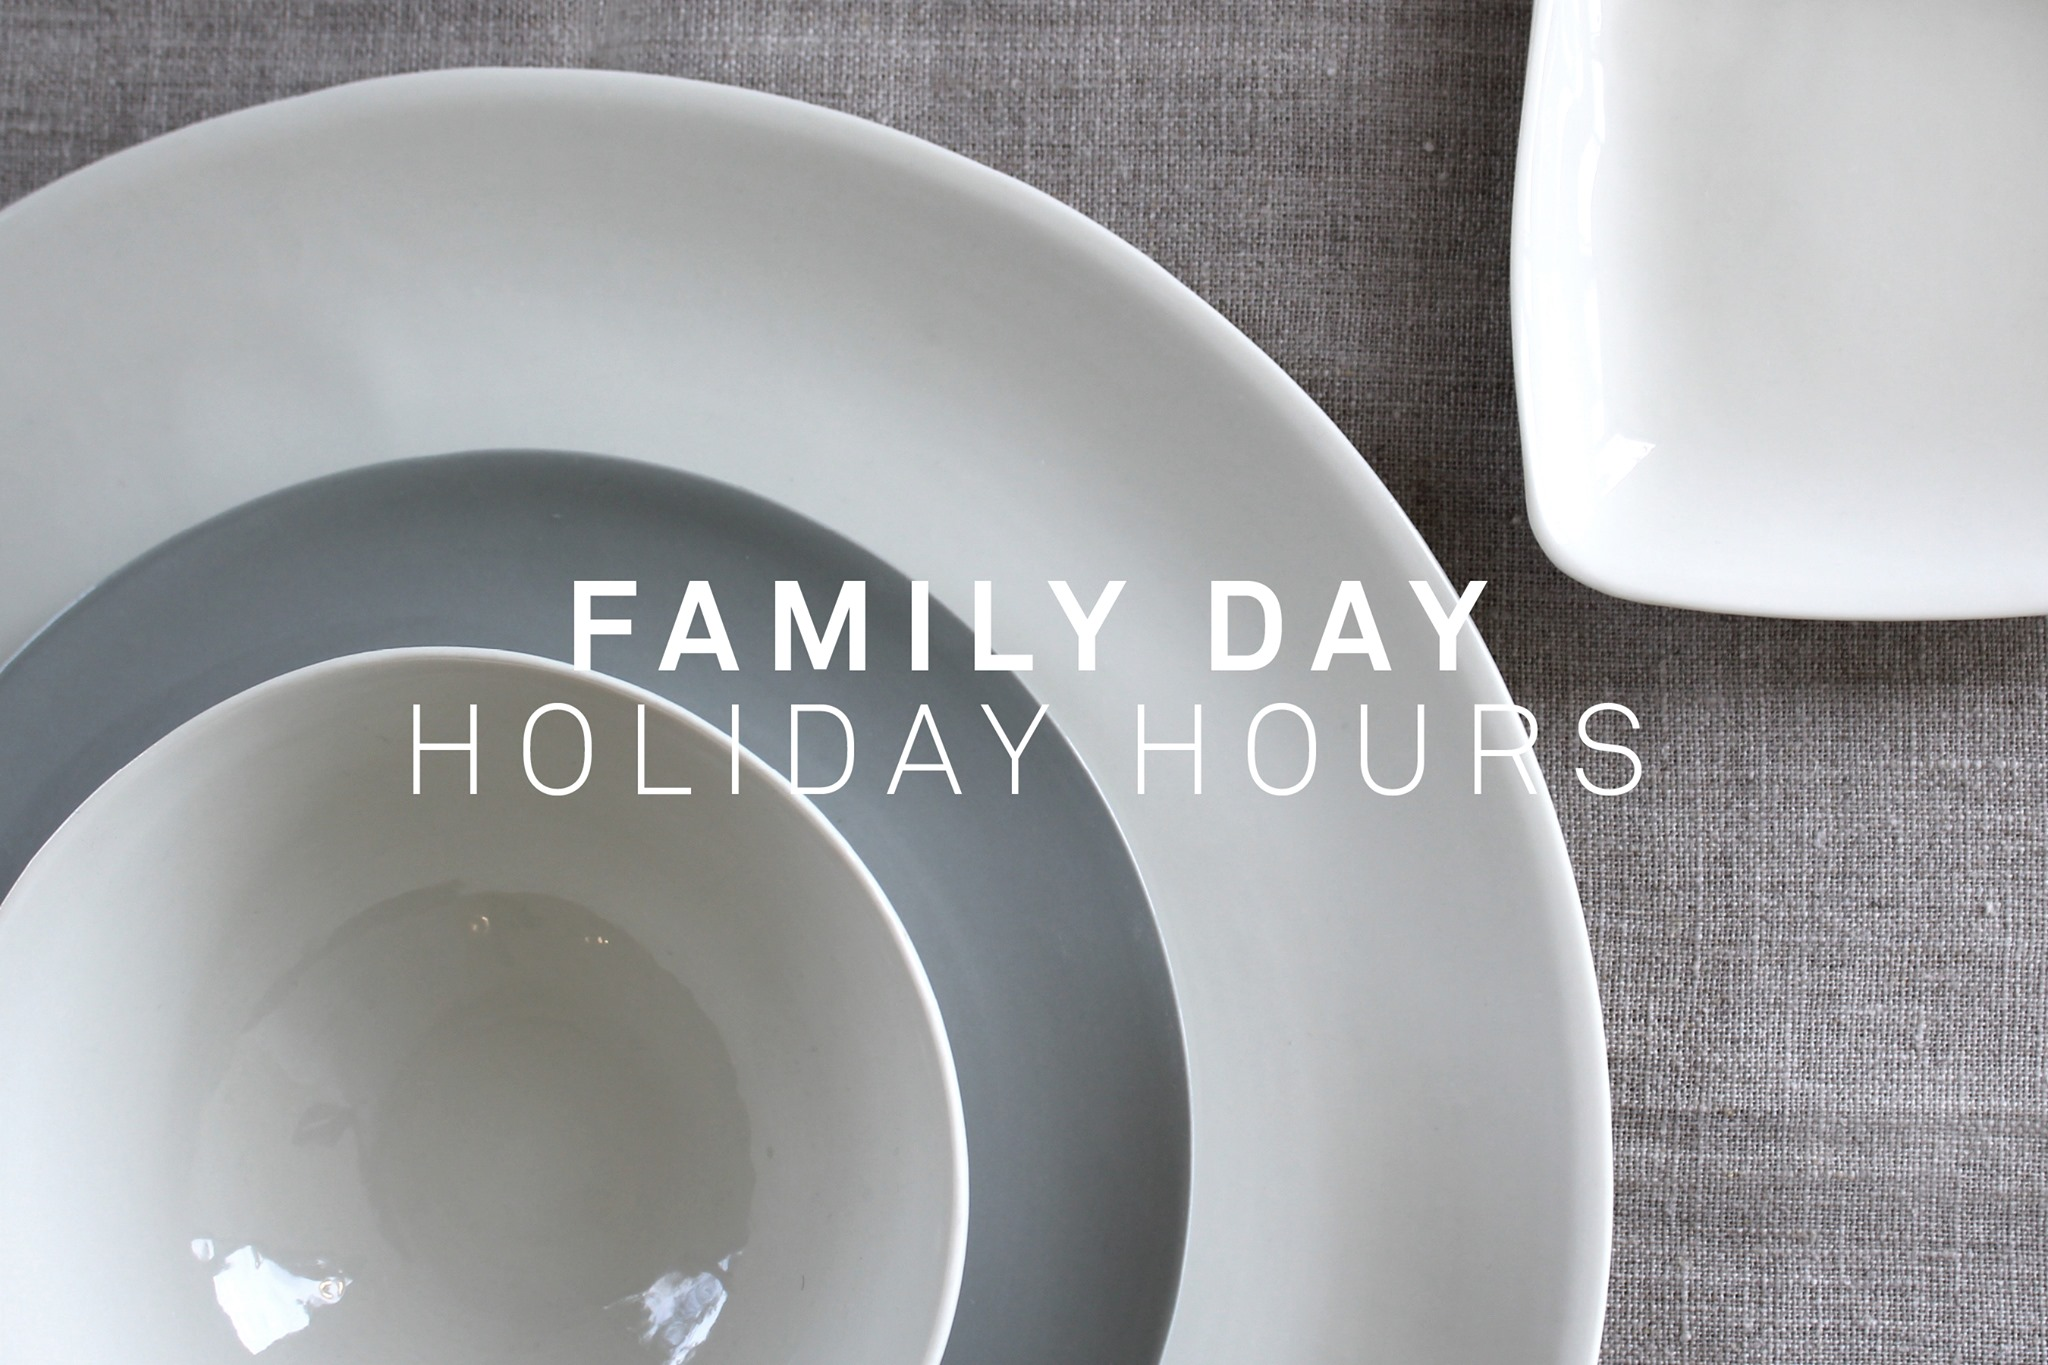 Family-day-hours